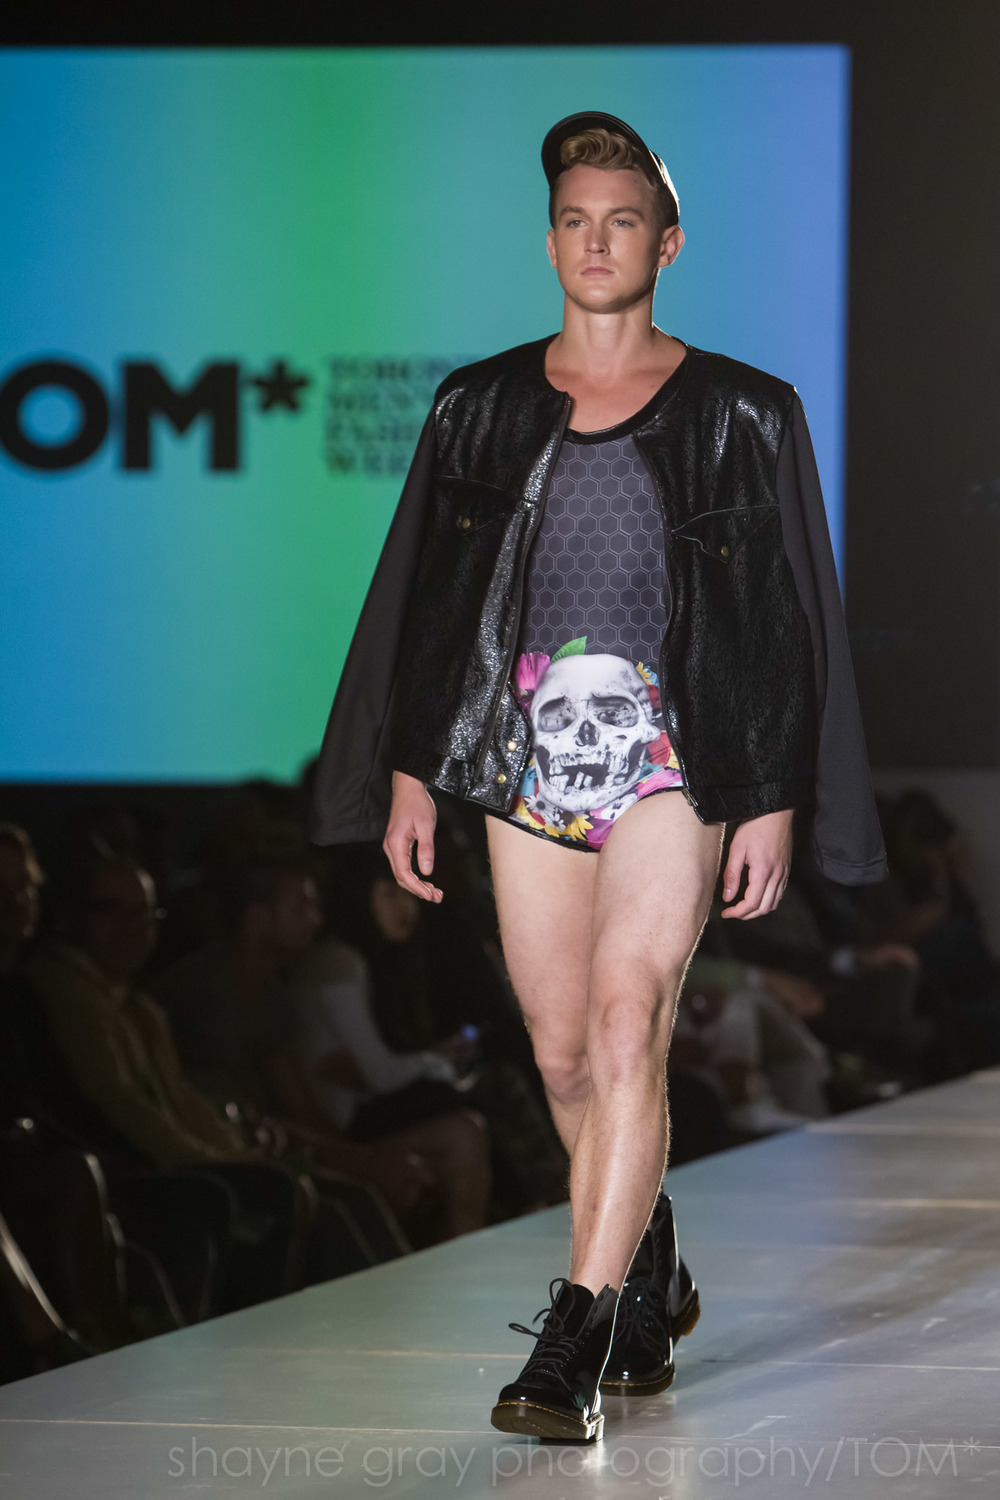 Shayne-Gray-Toronto-men's-fashion_week-TOM-worth-by-david-c-wigley-6387.jpg